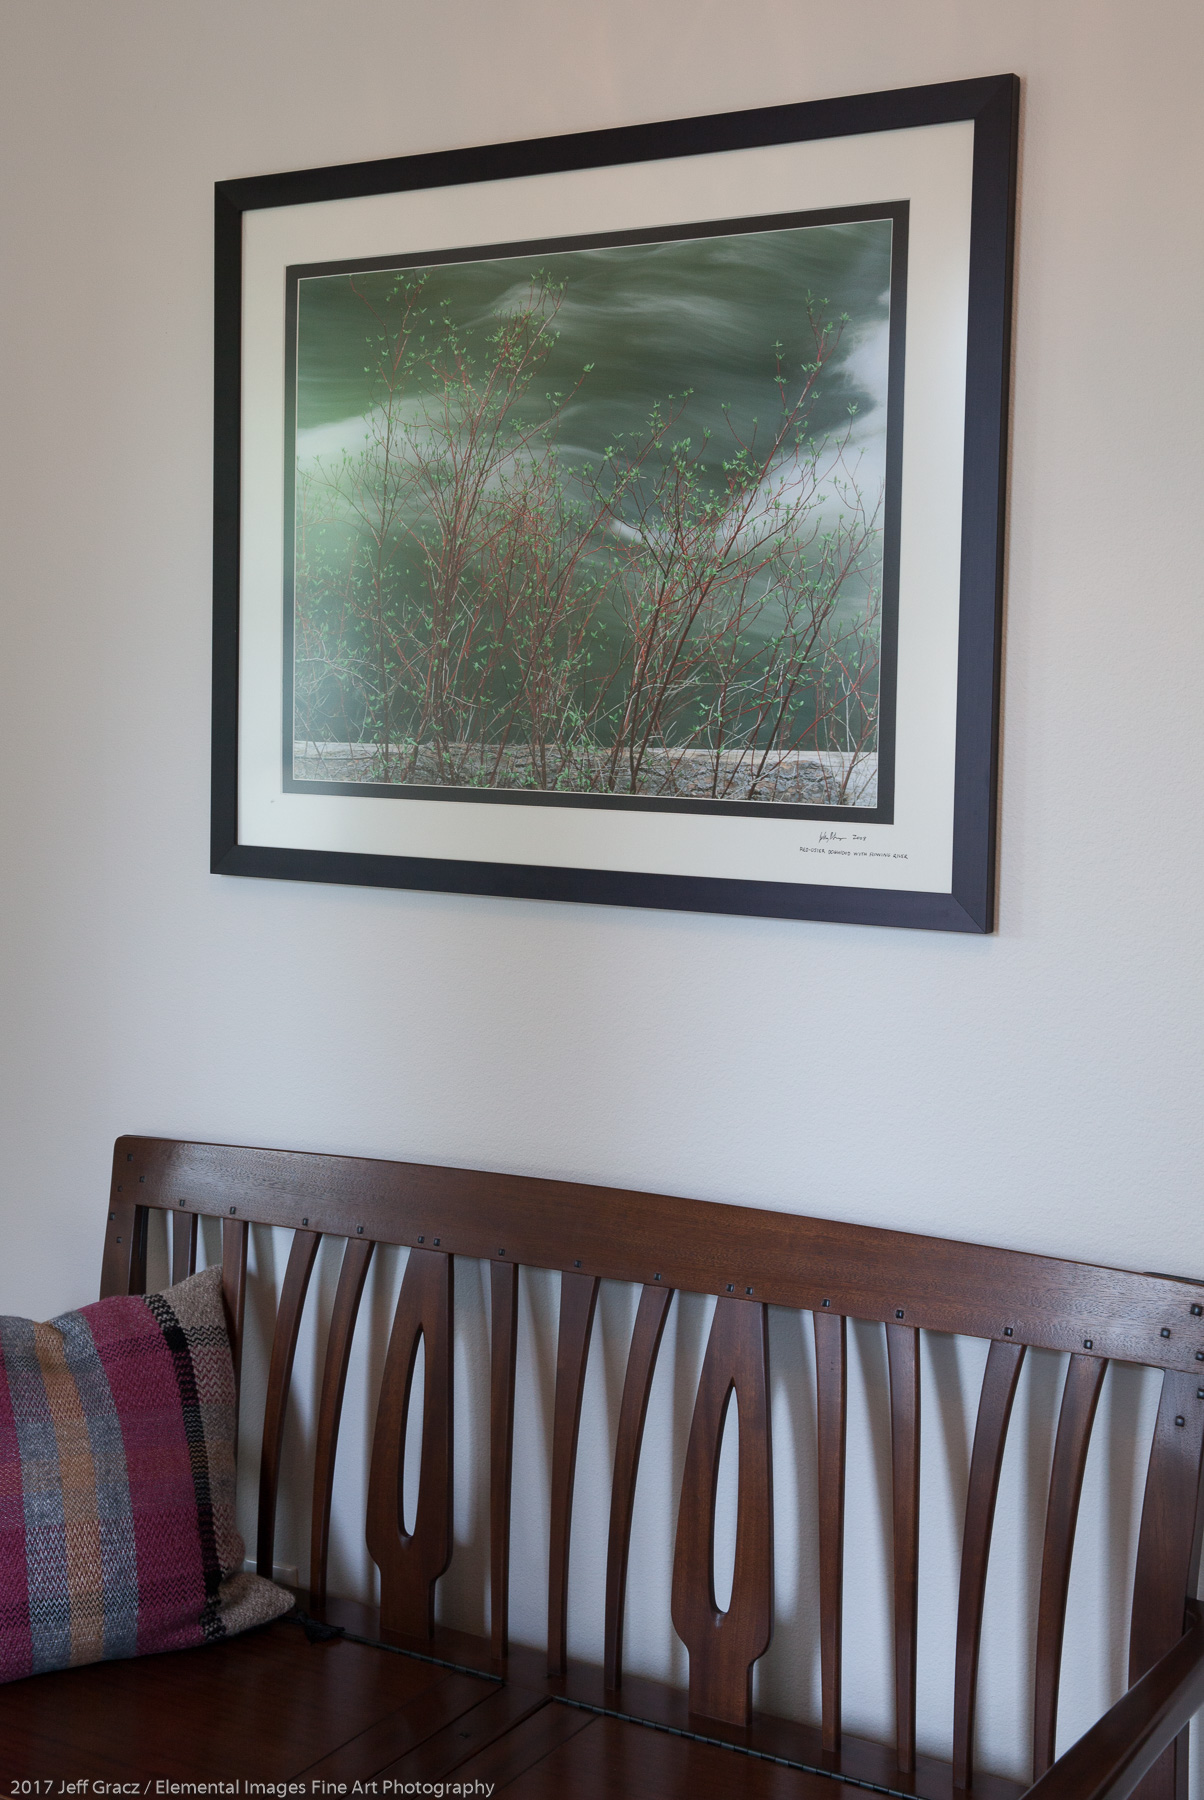 Double matted print with metal frame and UV protective, glare reducing glazing | Vancouver | WA | USA - © 2017 Jeff Gracz / Elemental Images Fine Art Photography - All Rights Reserved Worldwide